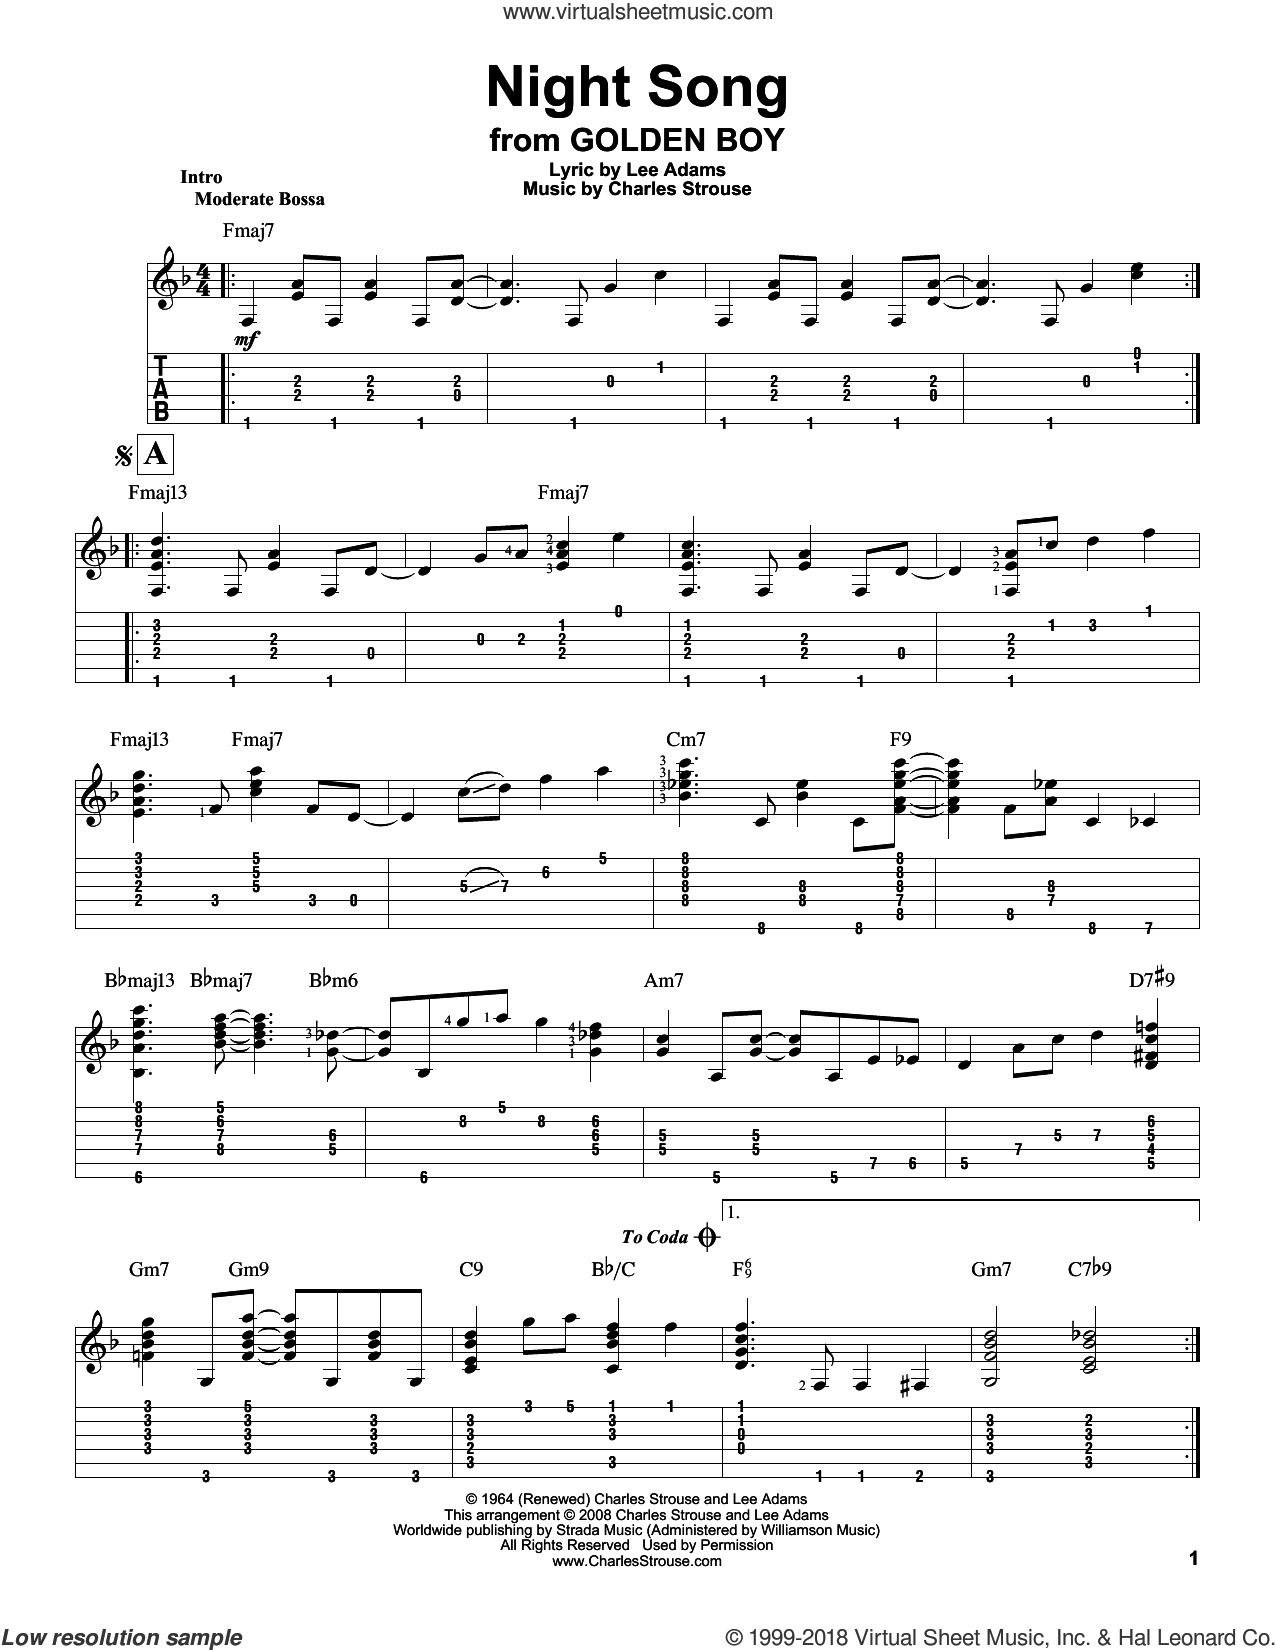 Night Song sheet music for guitar solo by Charles Strouse, Jeff Arnold and Lee Adams, intermediate skill level